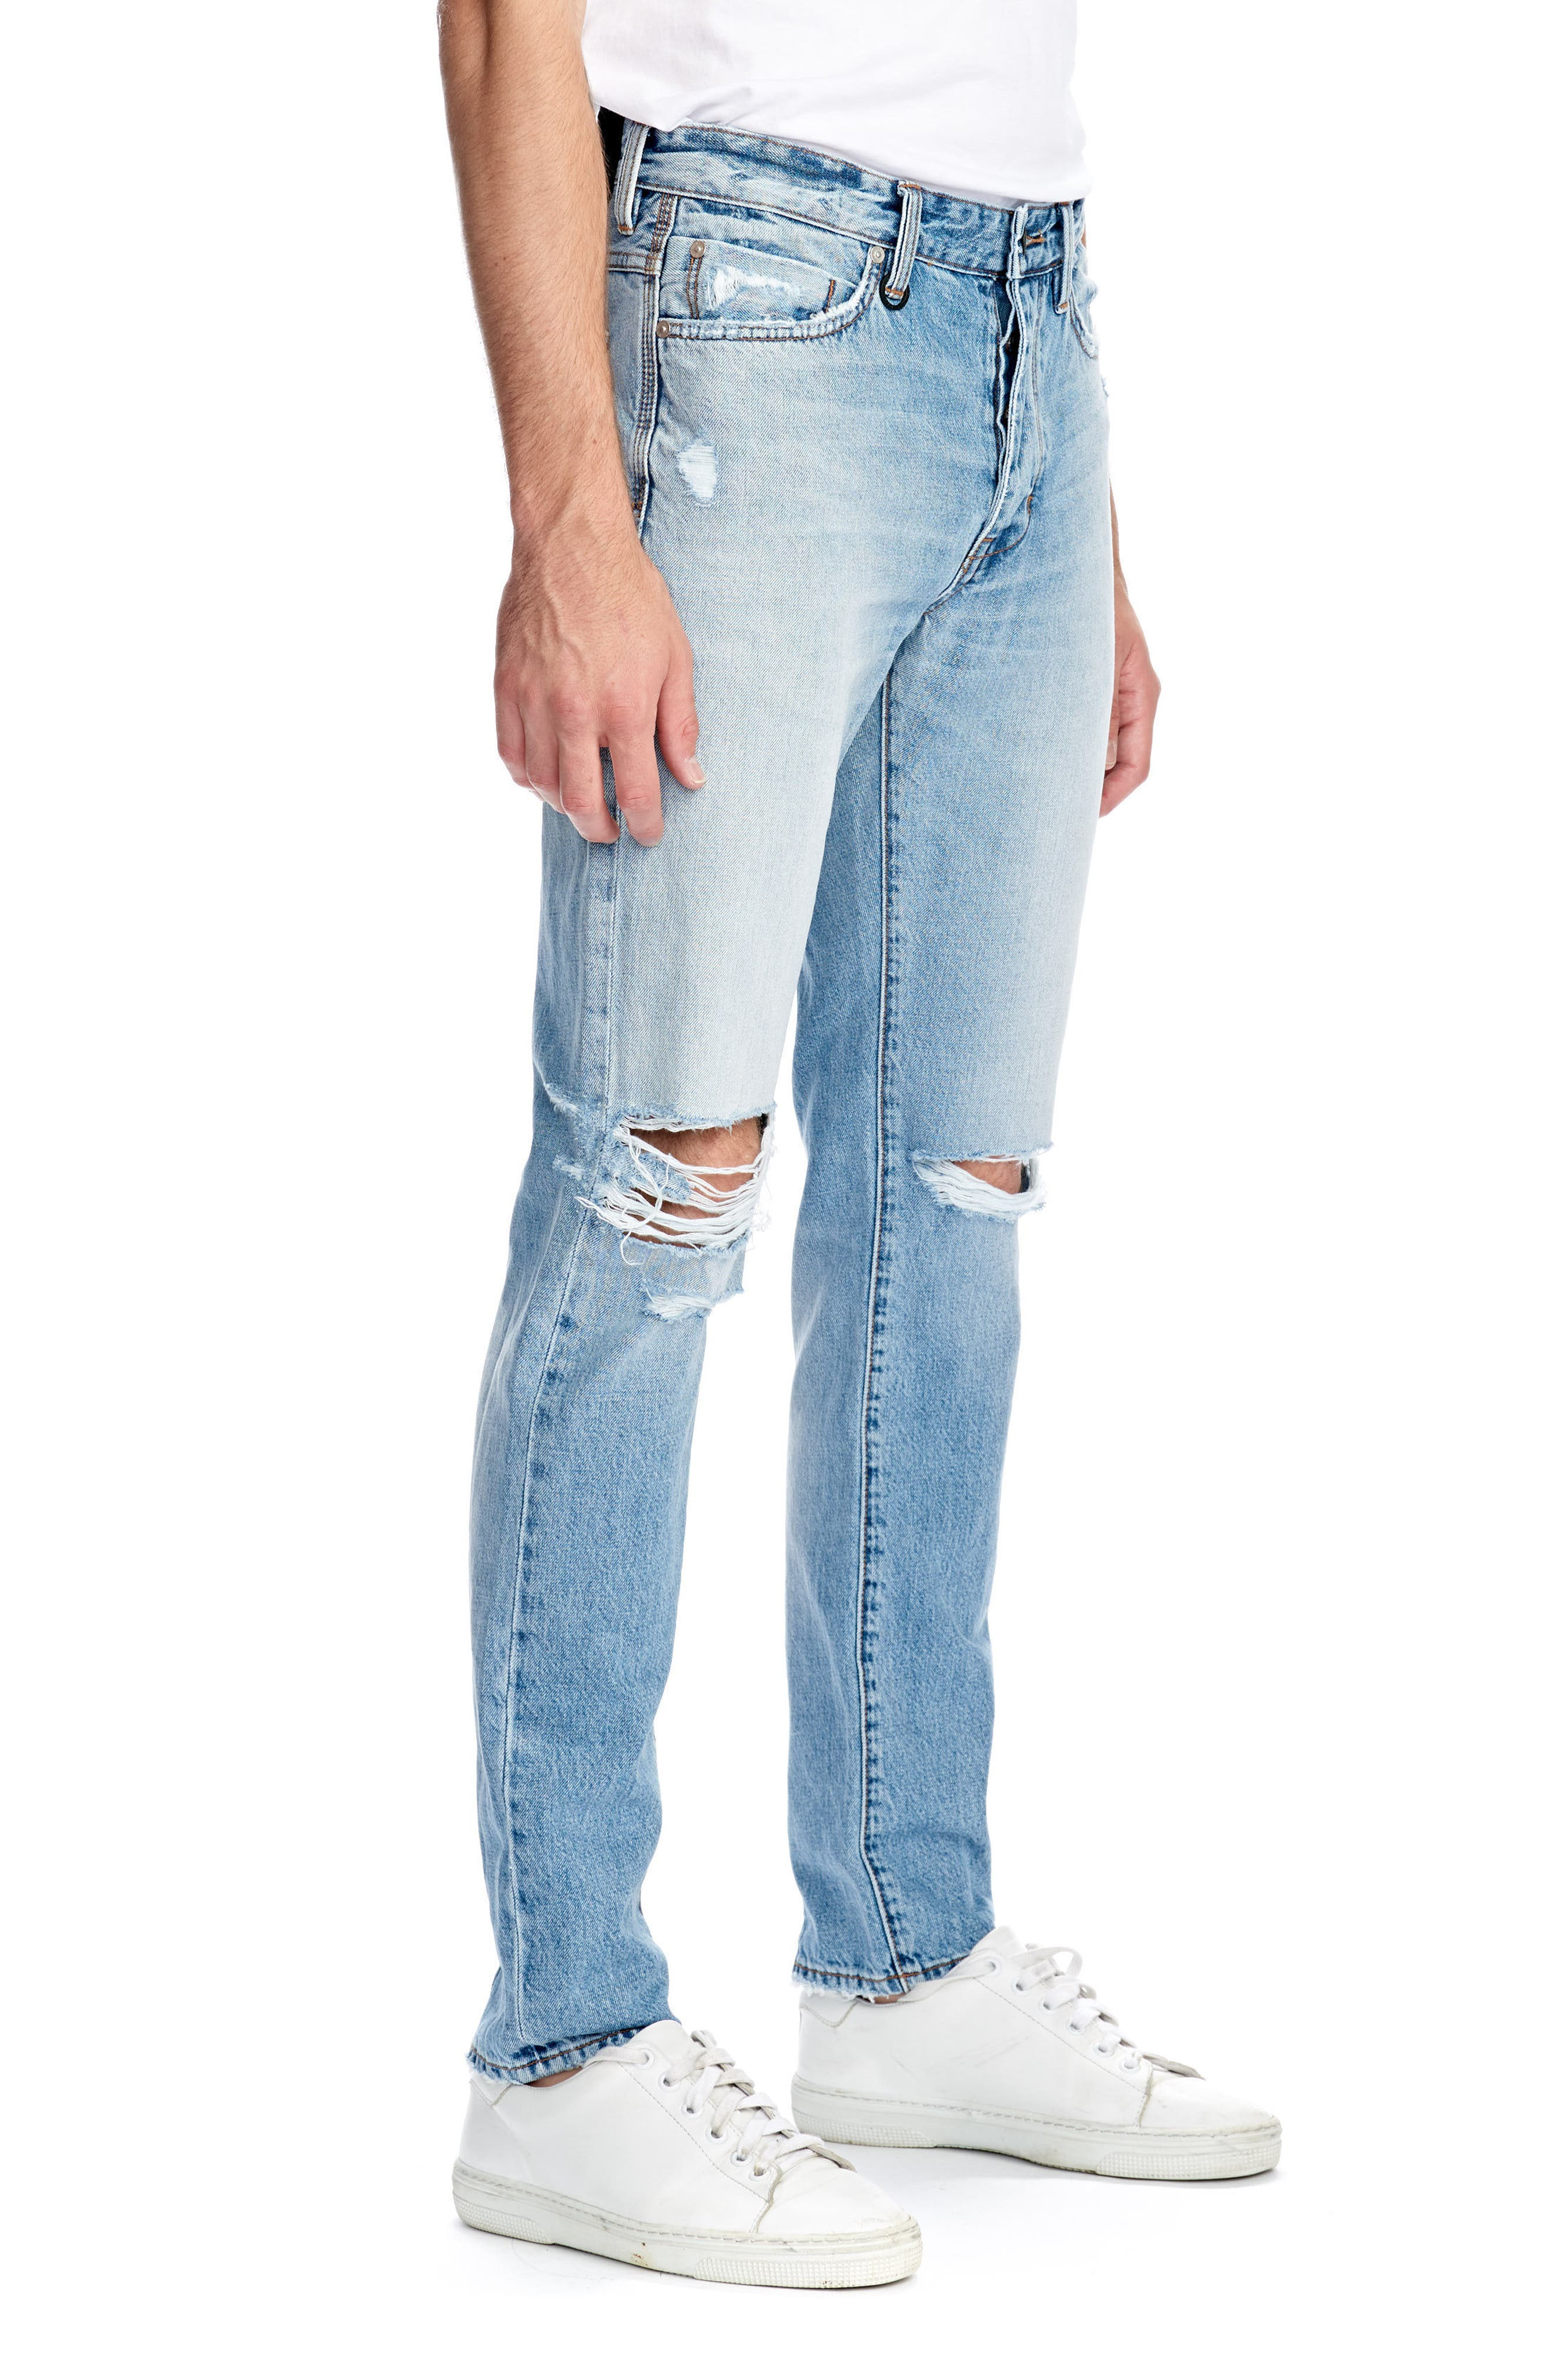 NEWU Lou Slim Fit Jeans,                             Alternate thumbnail 3, color,                             Stockholm Broken